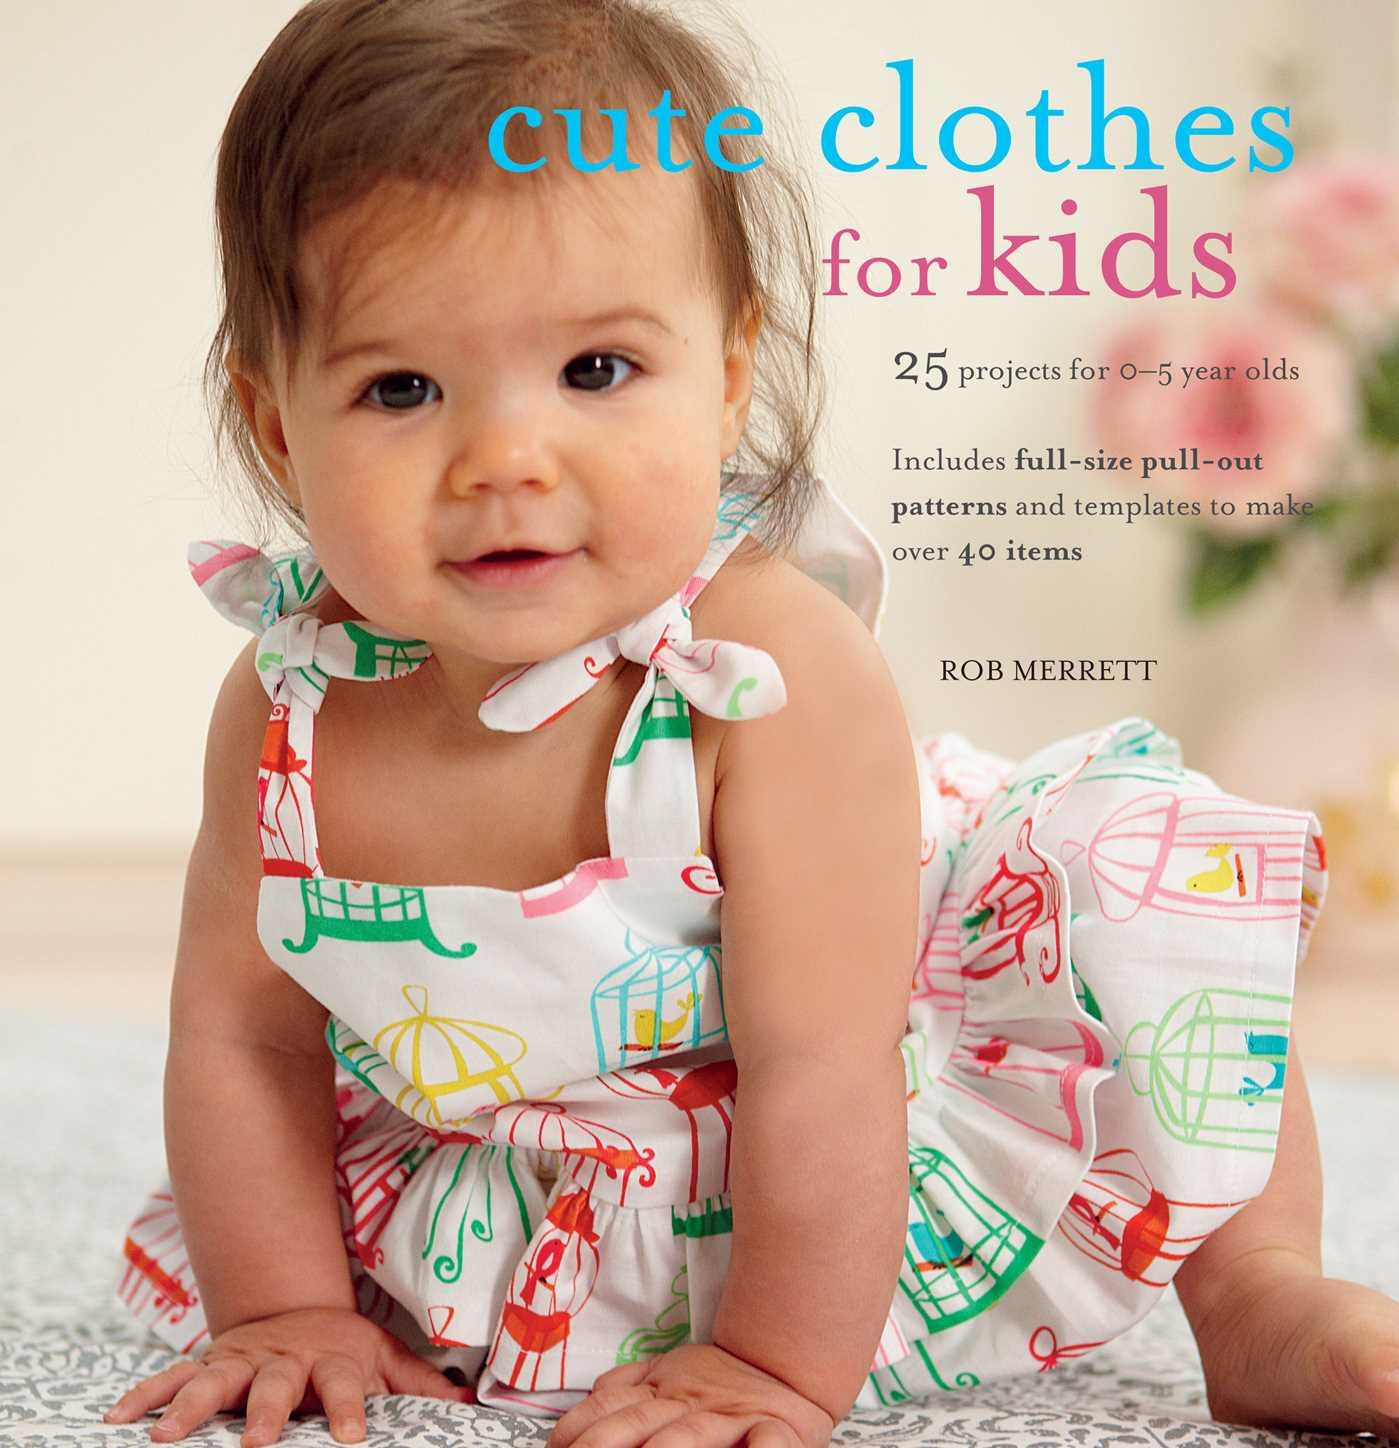 Cute Clothes for Kids 24 projects for 0 5 year olds Amazon